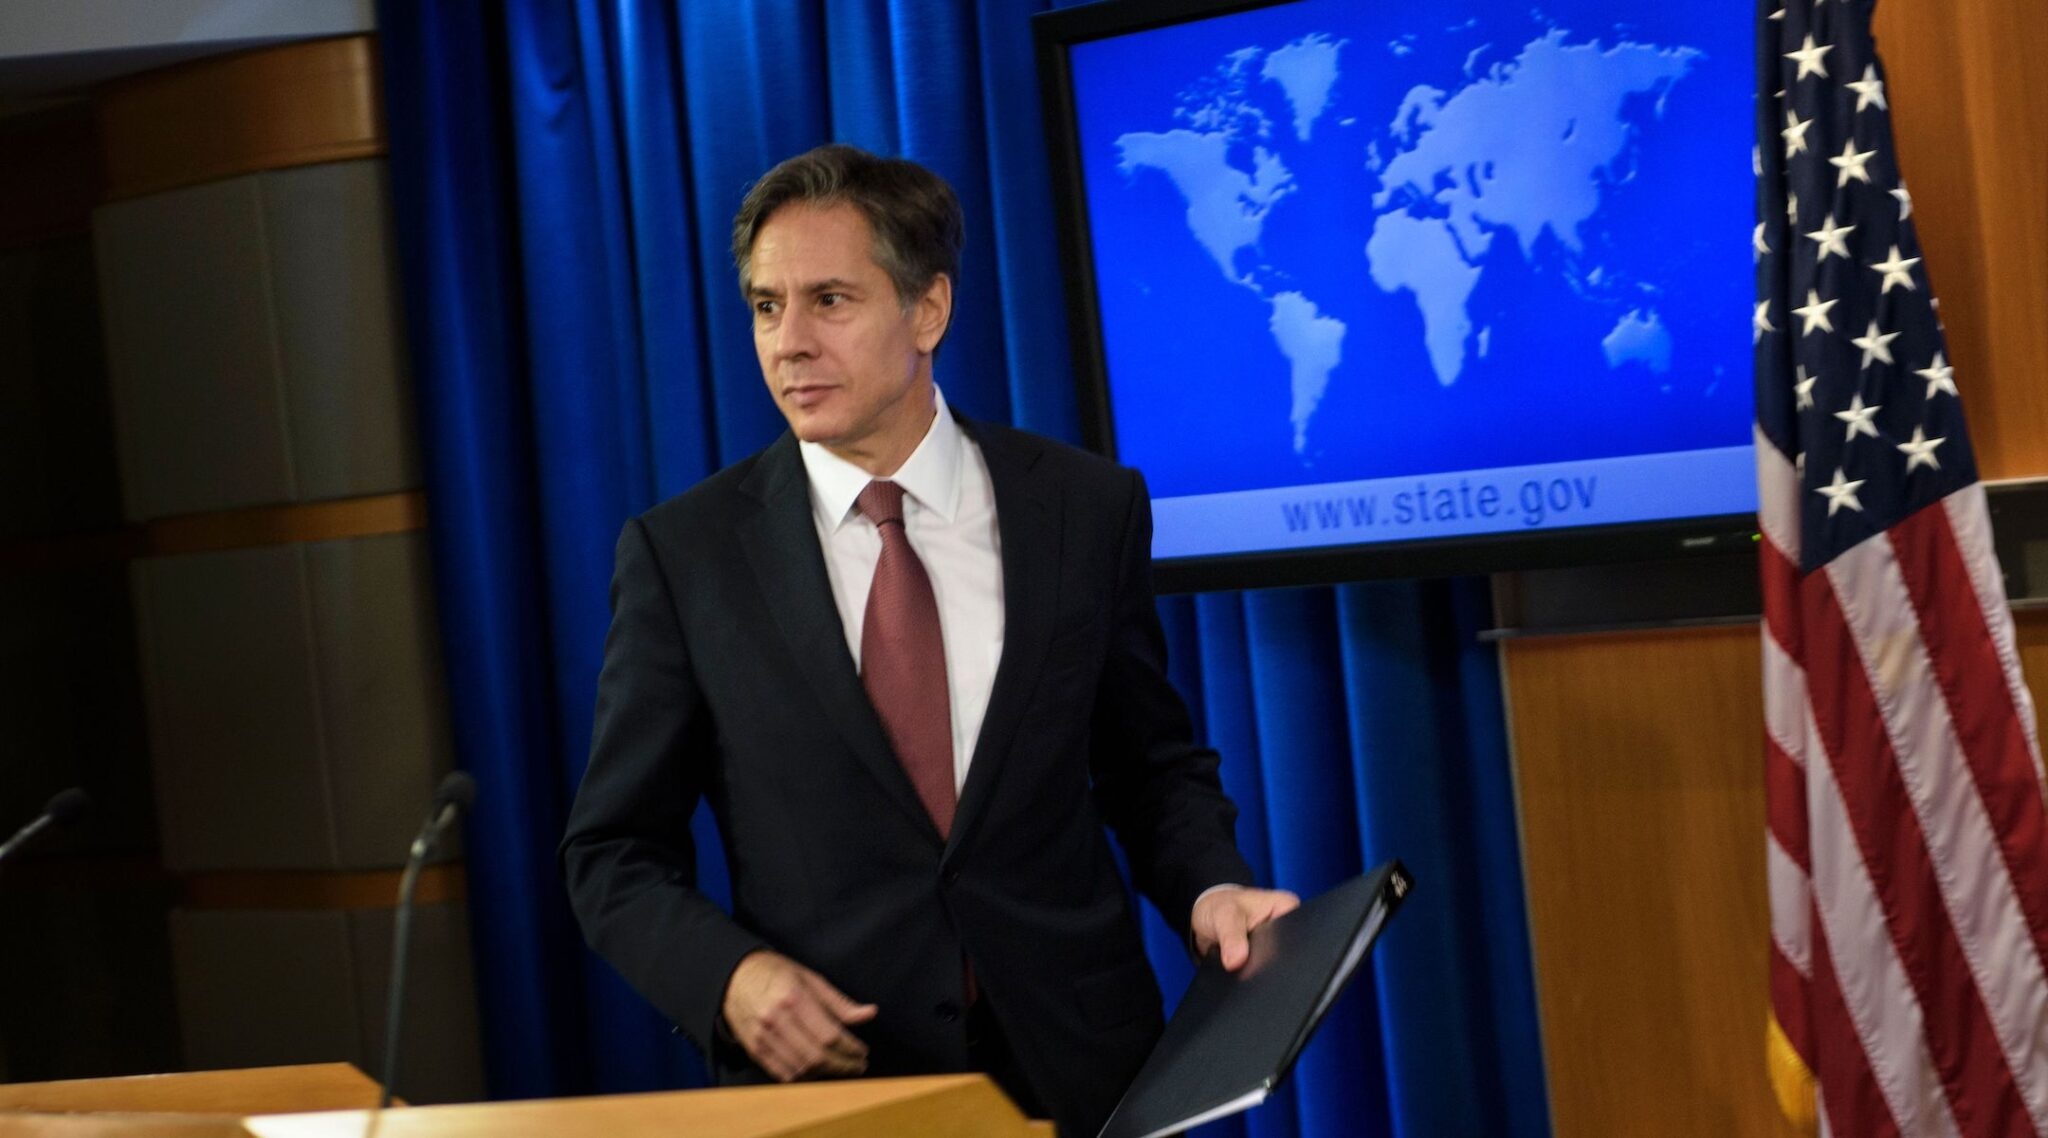 Tony Blinken, when he was deputy secretary of state, is seen at a news conference at the State Department, Aug. 10, 2016. (Photo/JTA-Brendan Smialowski-AFP via Getty Images)